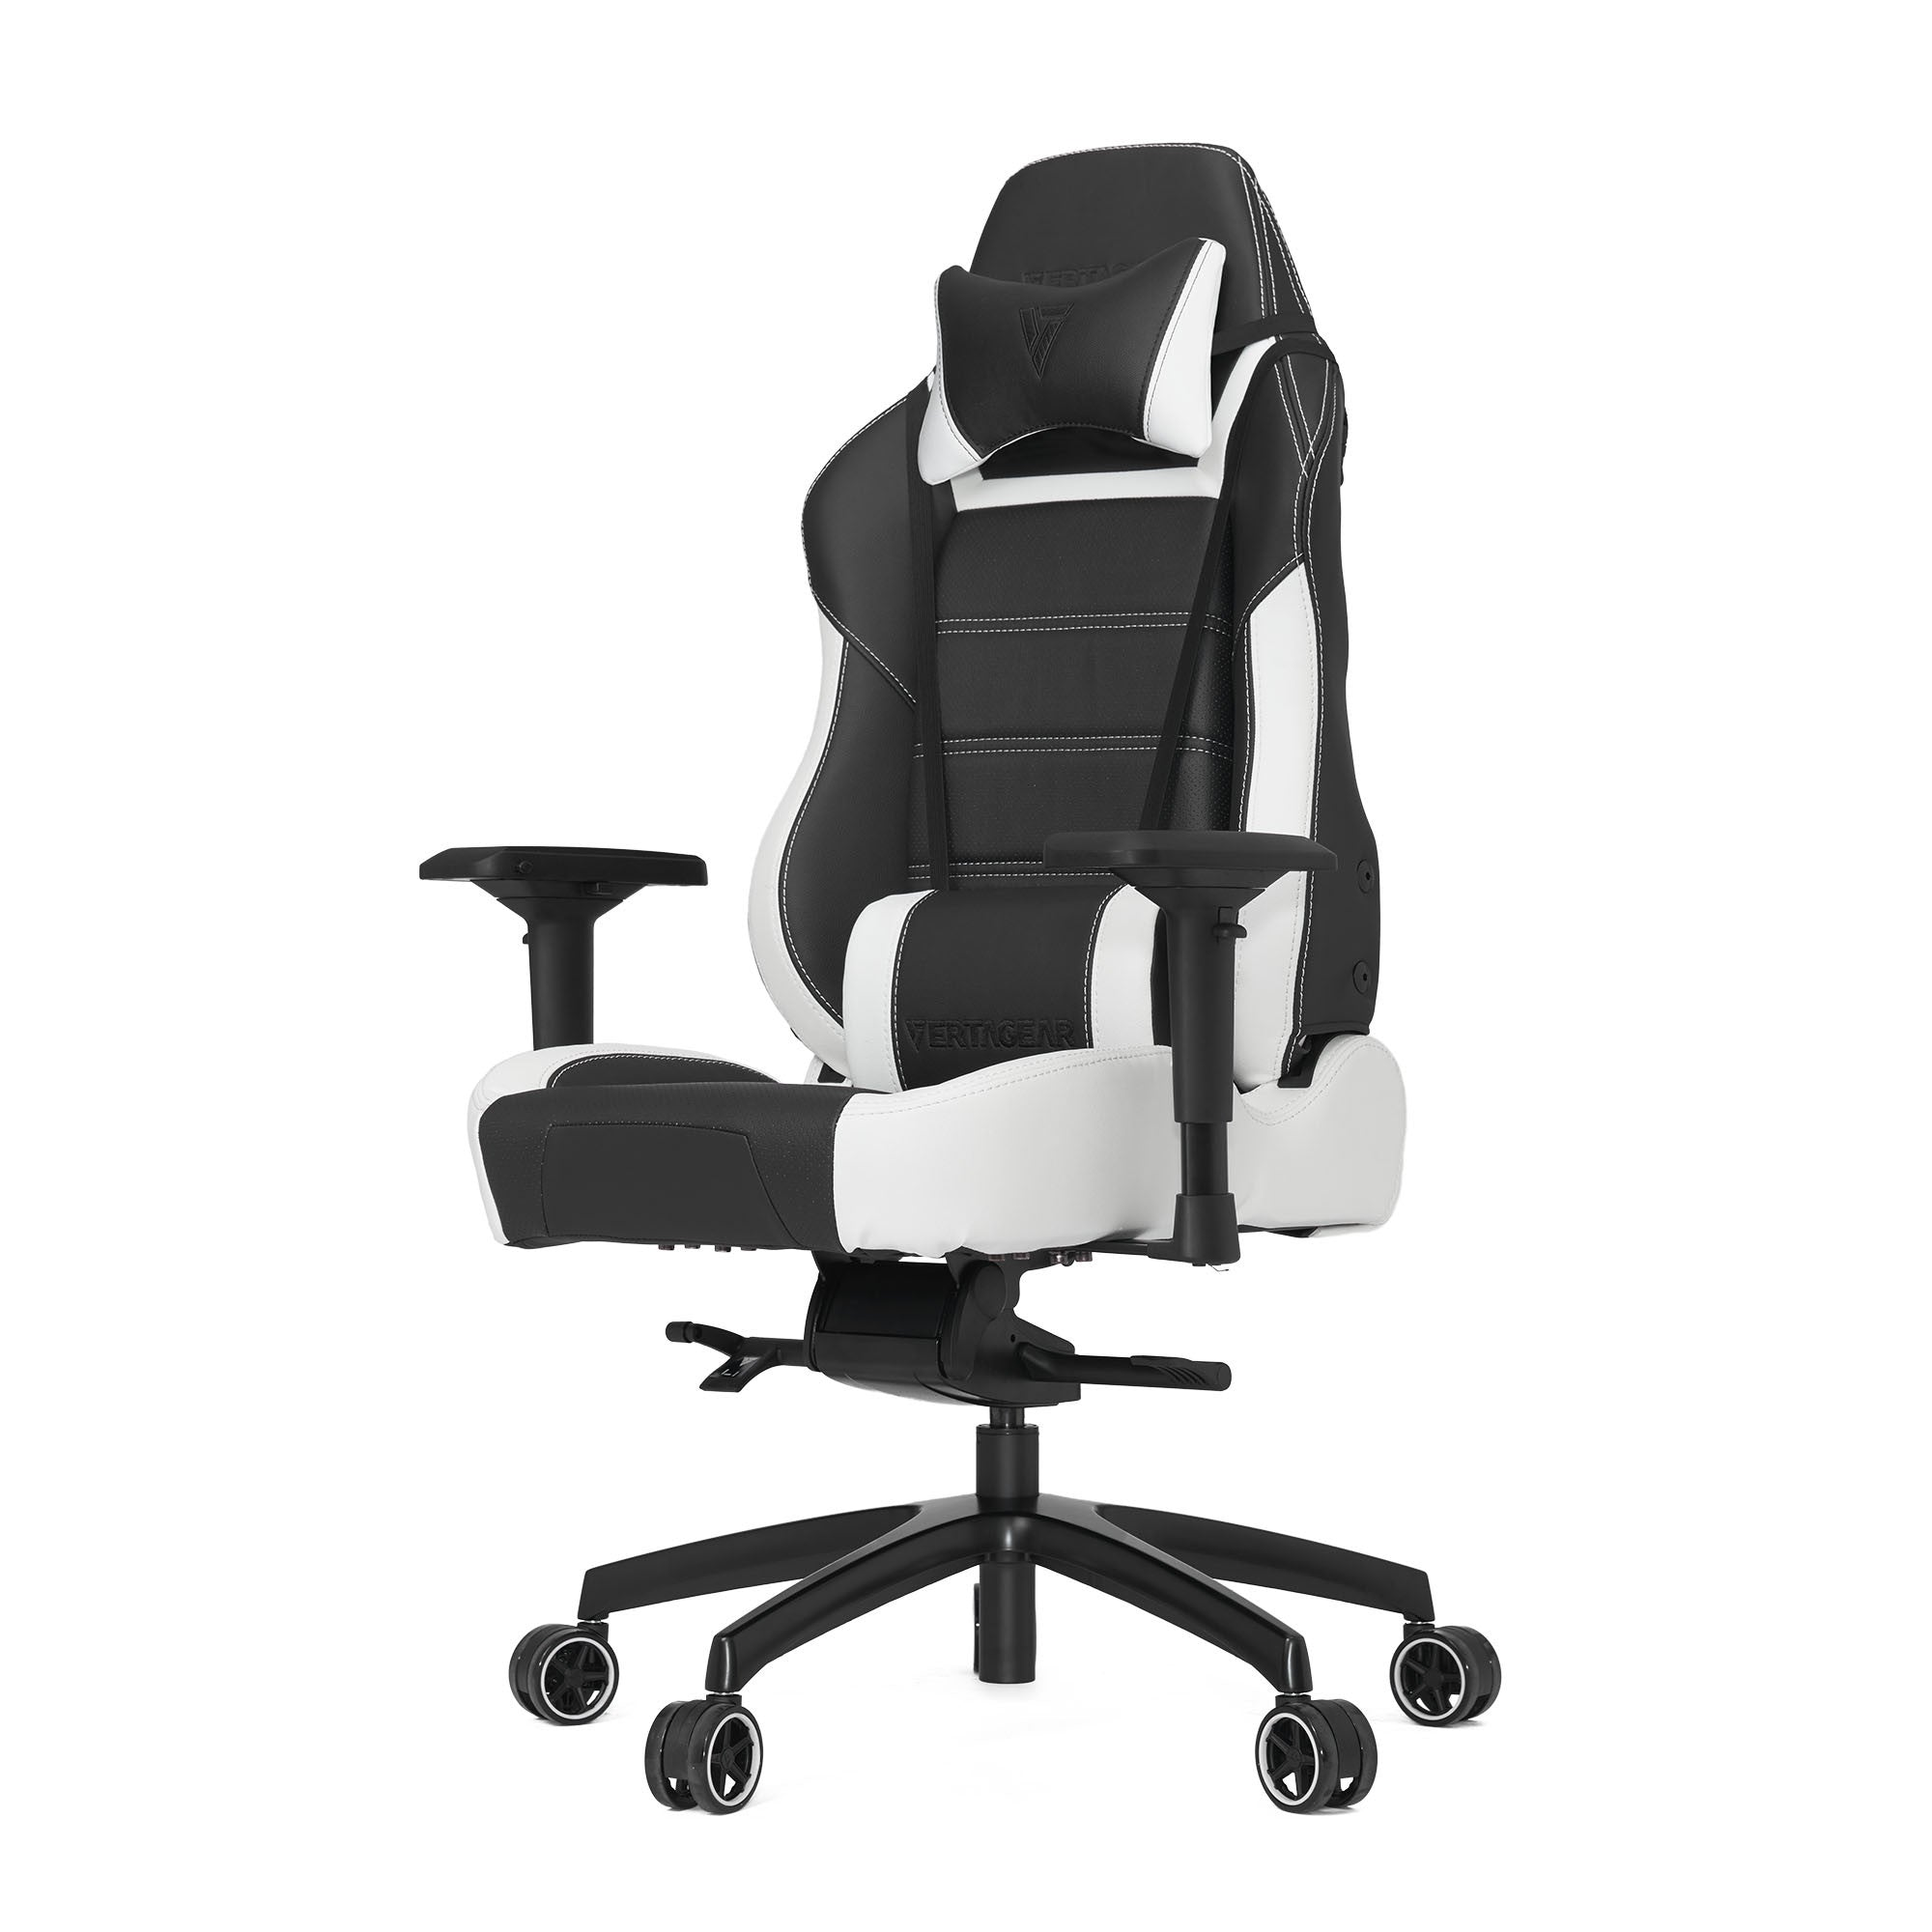 superior mulberry design chairs modern amazing embody scene furniture style best magnificent chair herman ergonomic miller ideas fabric desk new office